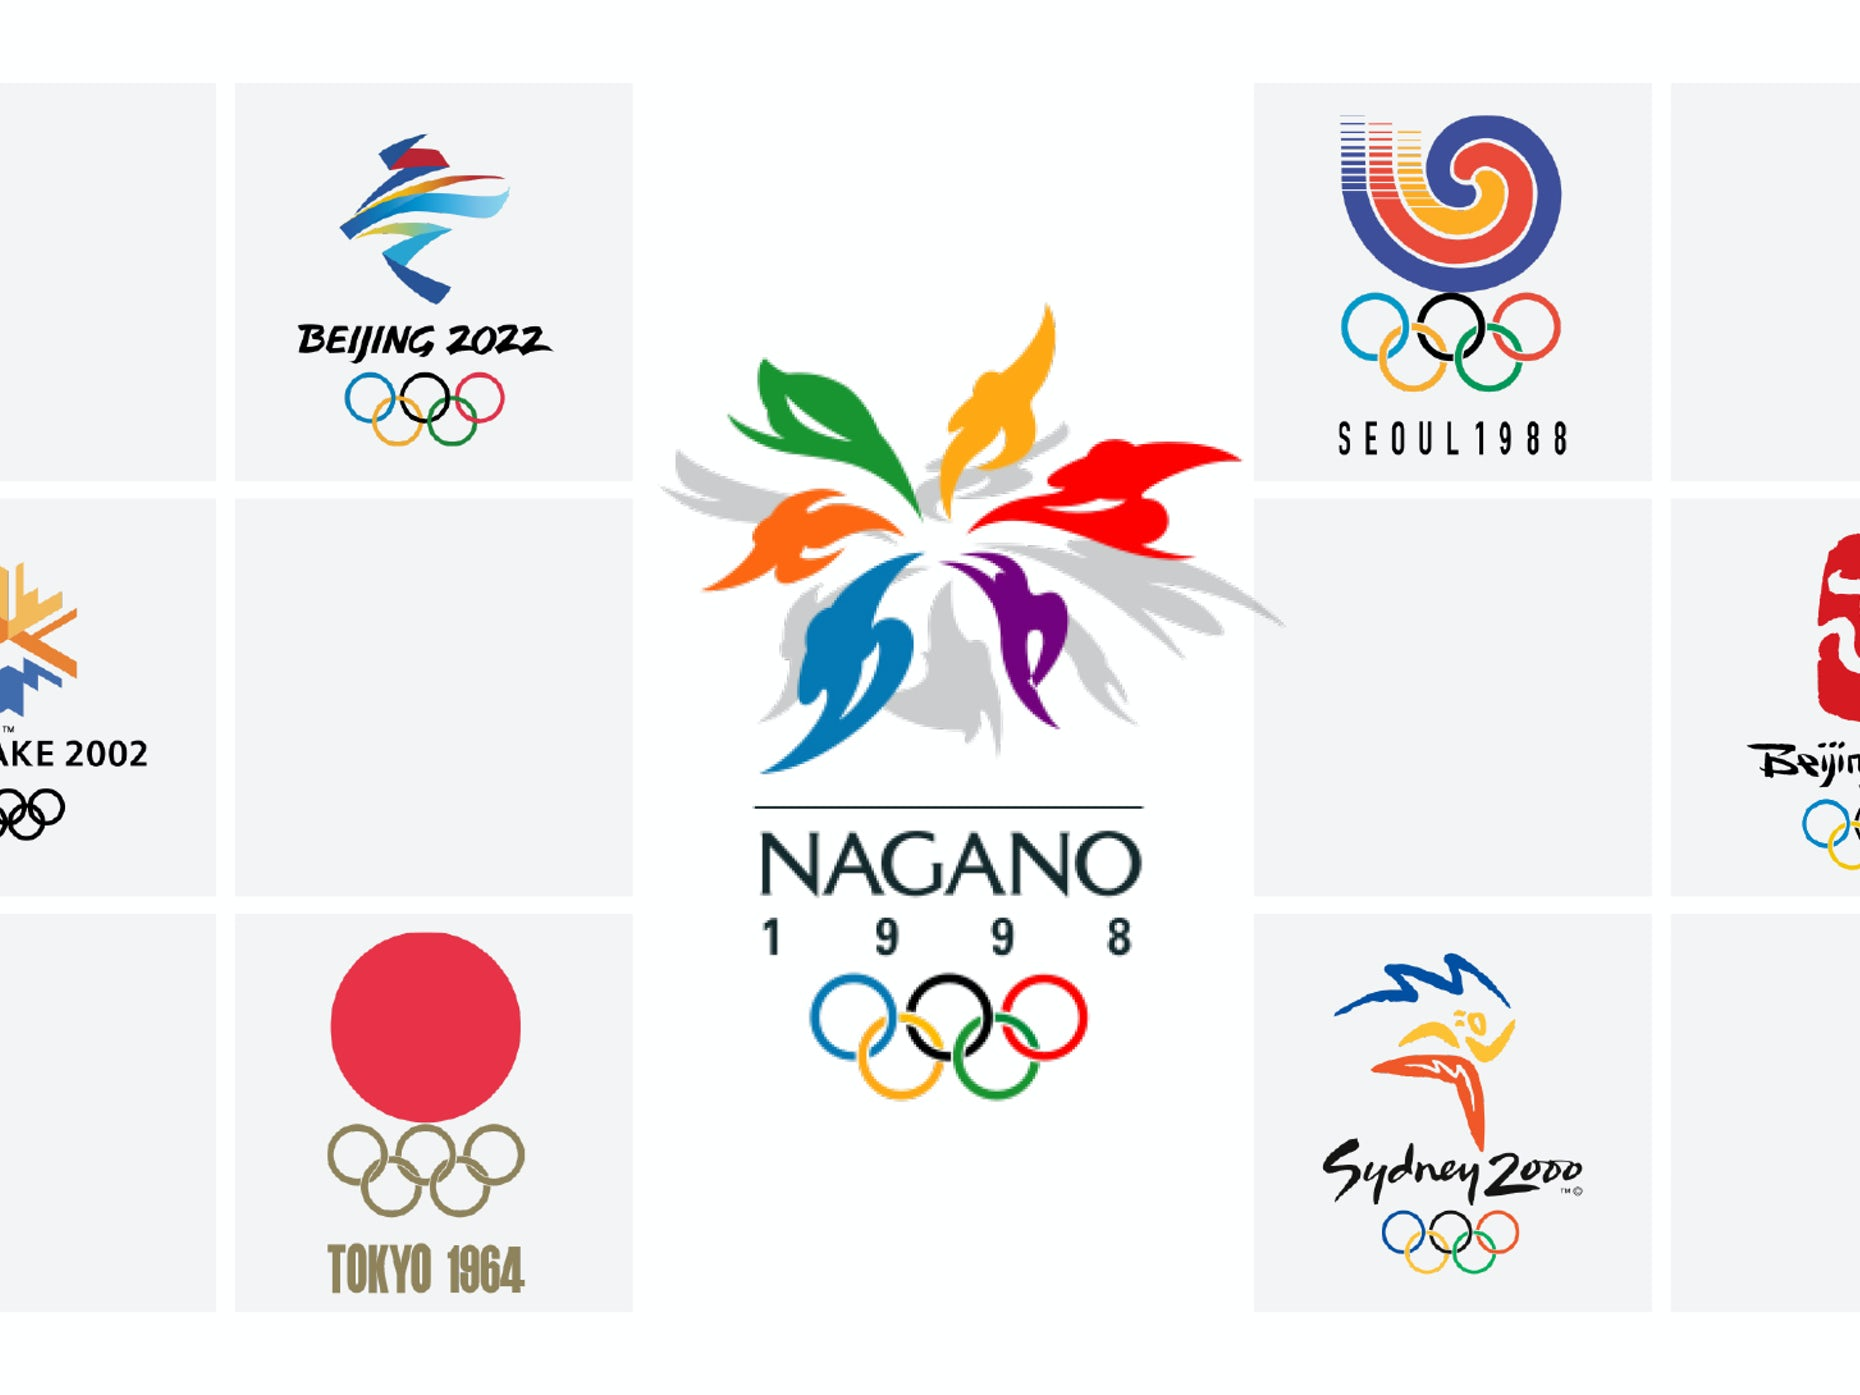 The Best And Worst Olympic Logos Of All Time 99designs